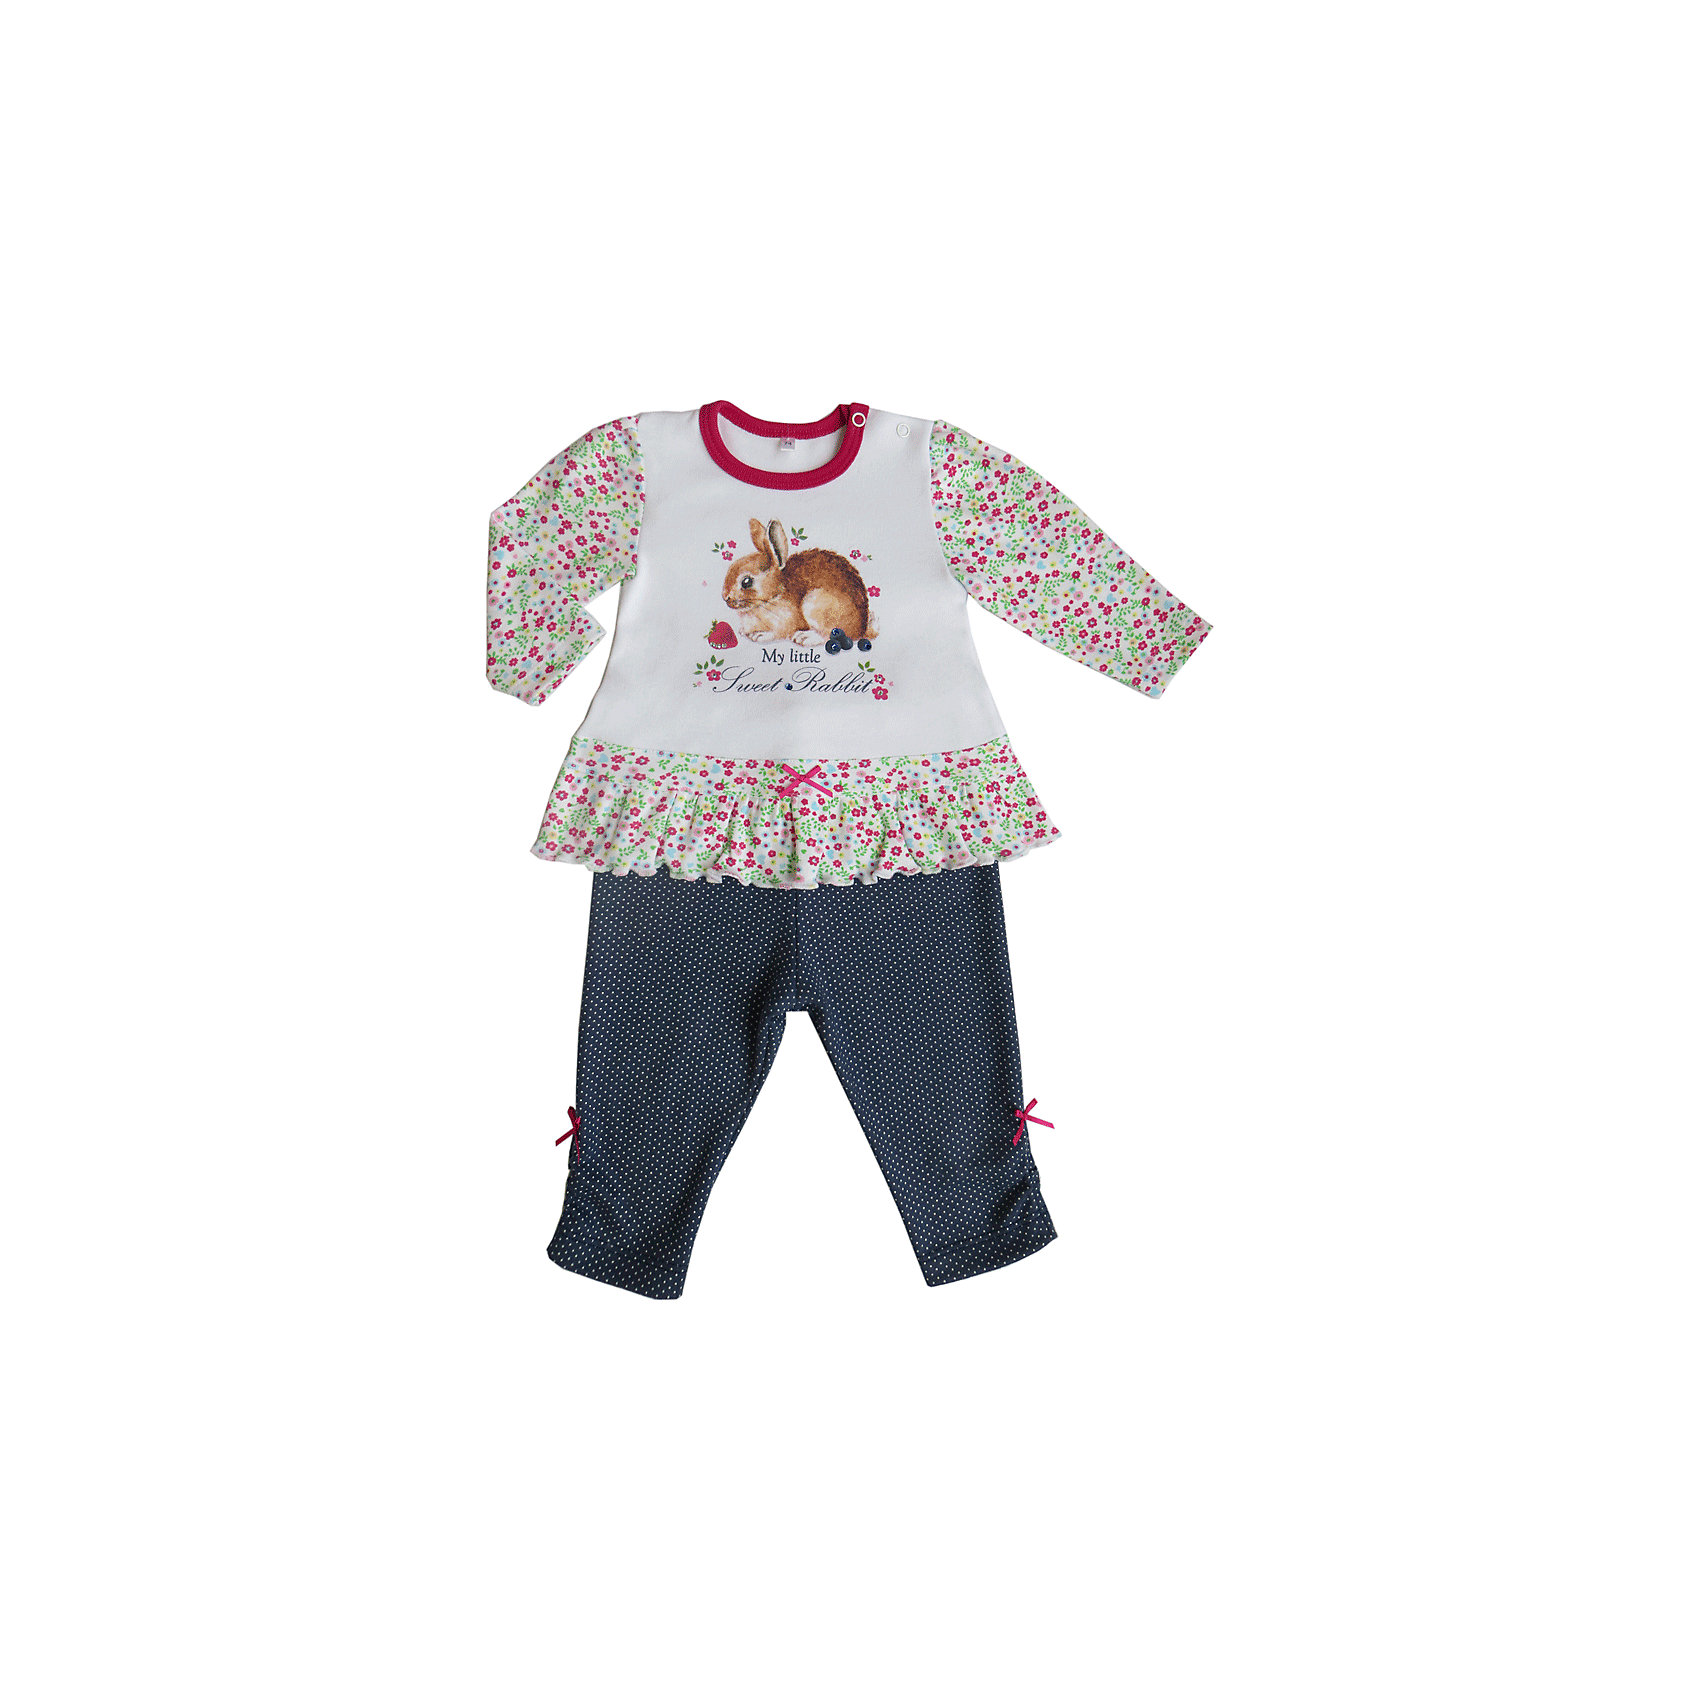 Soni Kids Комплект: футболка с длинным рукавом и леггинсы для девочки Soni kids ems dhl free shipping toddler s little girl s tull dress princess birthday party masquerade rapunzel cosplay halloween wear